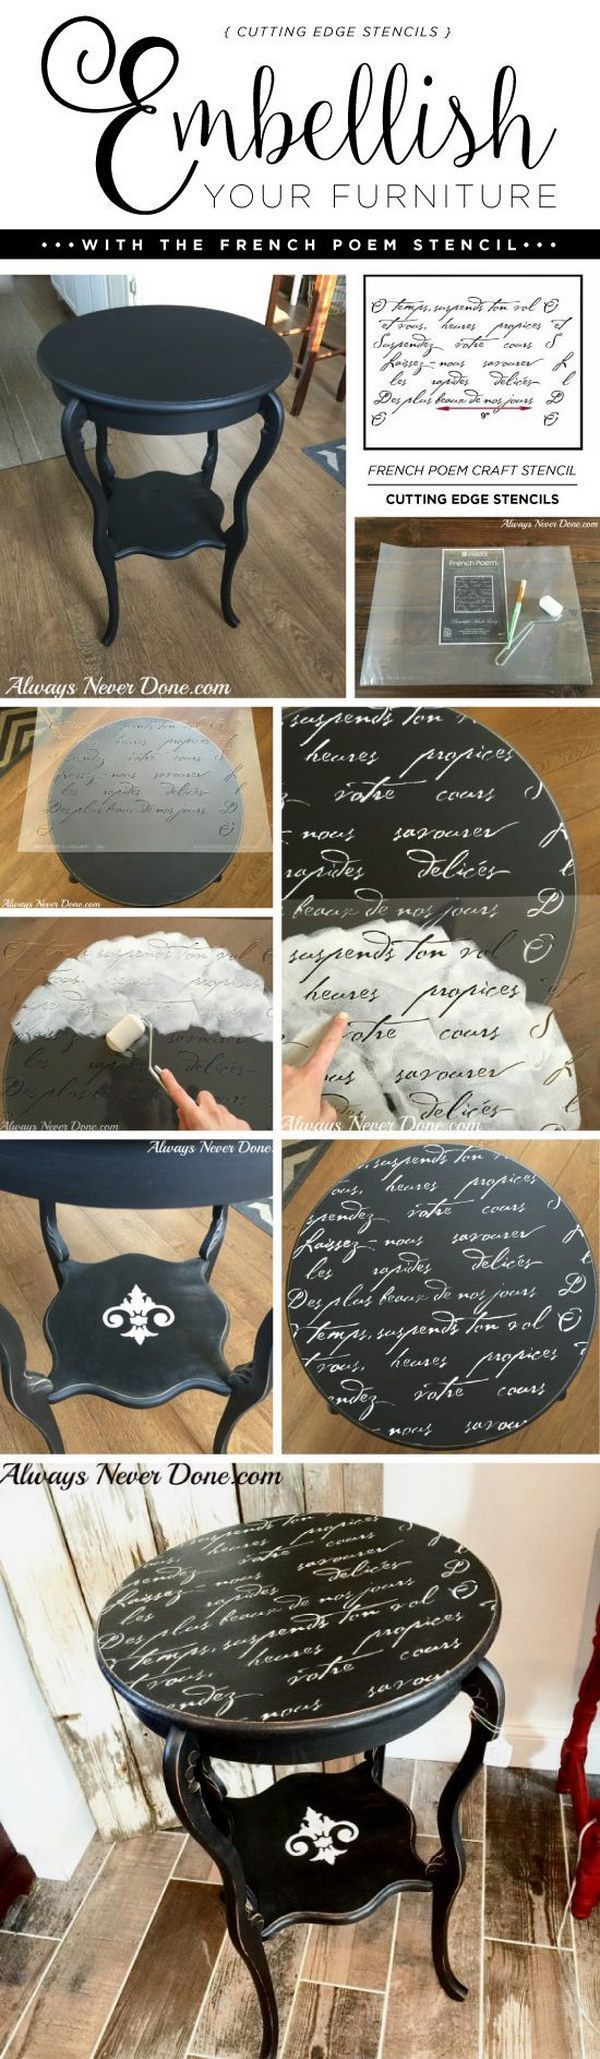 Awesome Shabby Chic Decor DIY Ideas